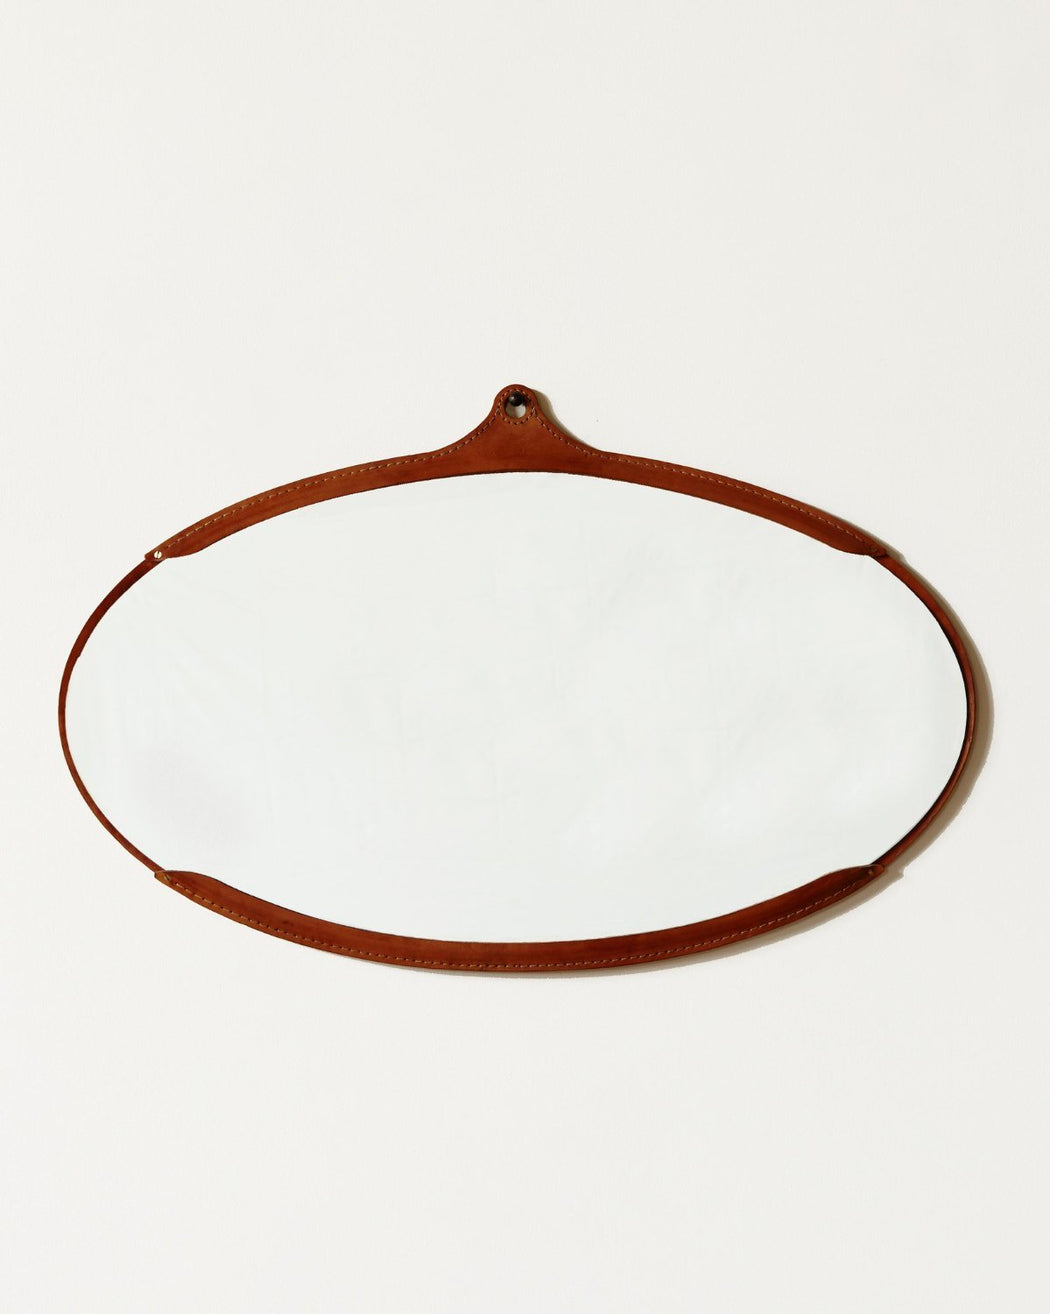 Lostine Fairmount wide oval leather mirror